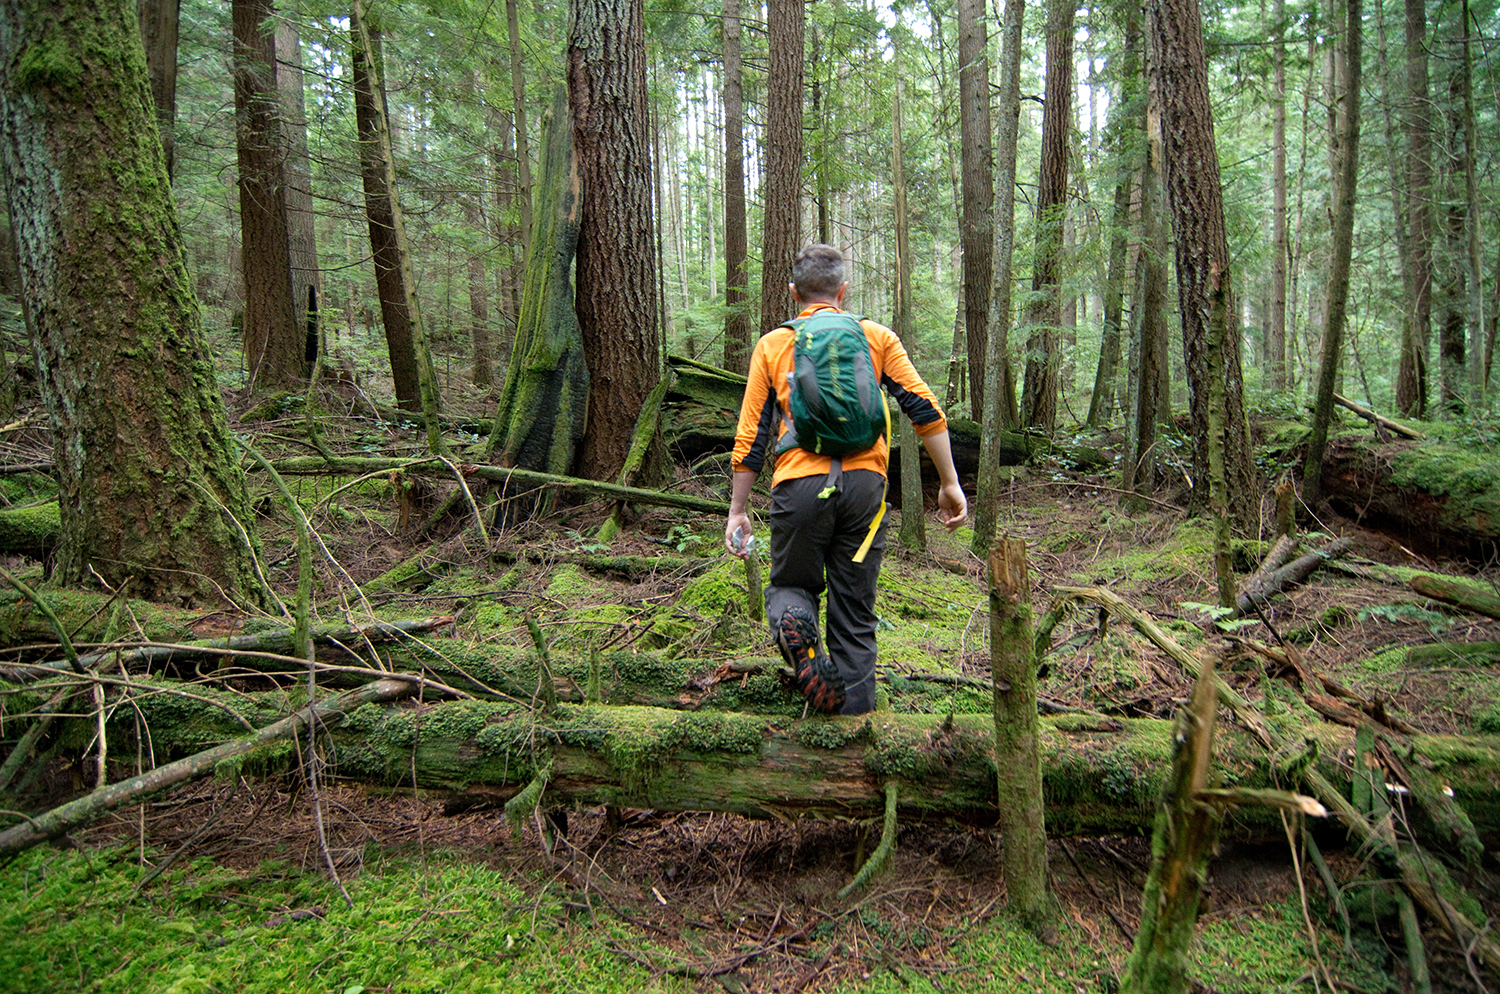 Before beginning to build, Martin spent several days hiking around the area while deciding where the trail should go. He flagged a rough line using yellow tape, which was gradually refined as the work progressed.